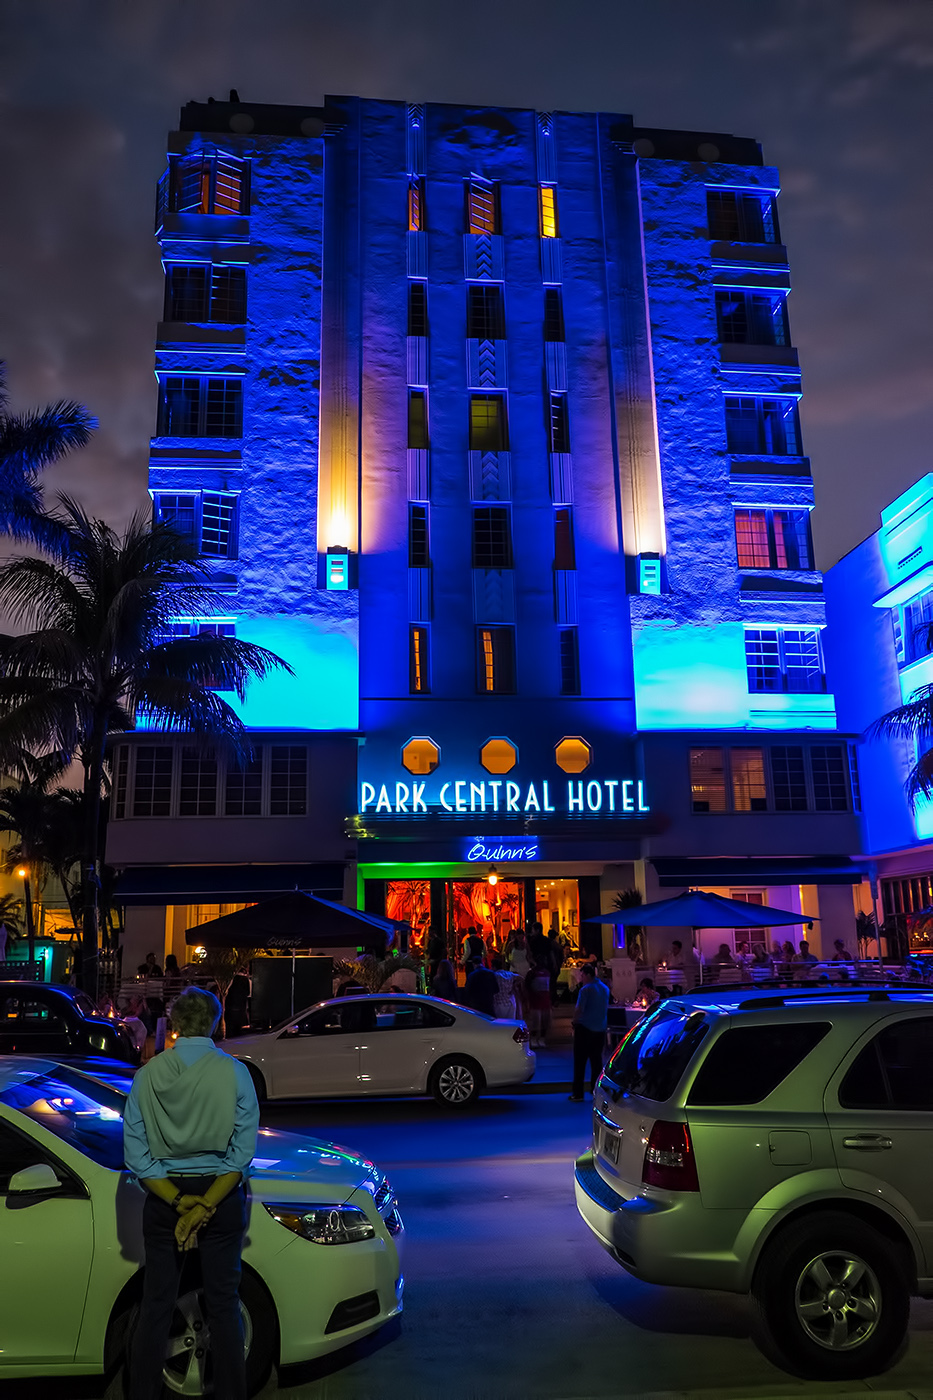 Park Central Hotel South Beach Miami Art Deco District